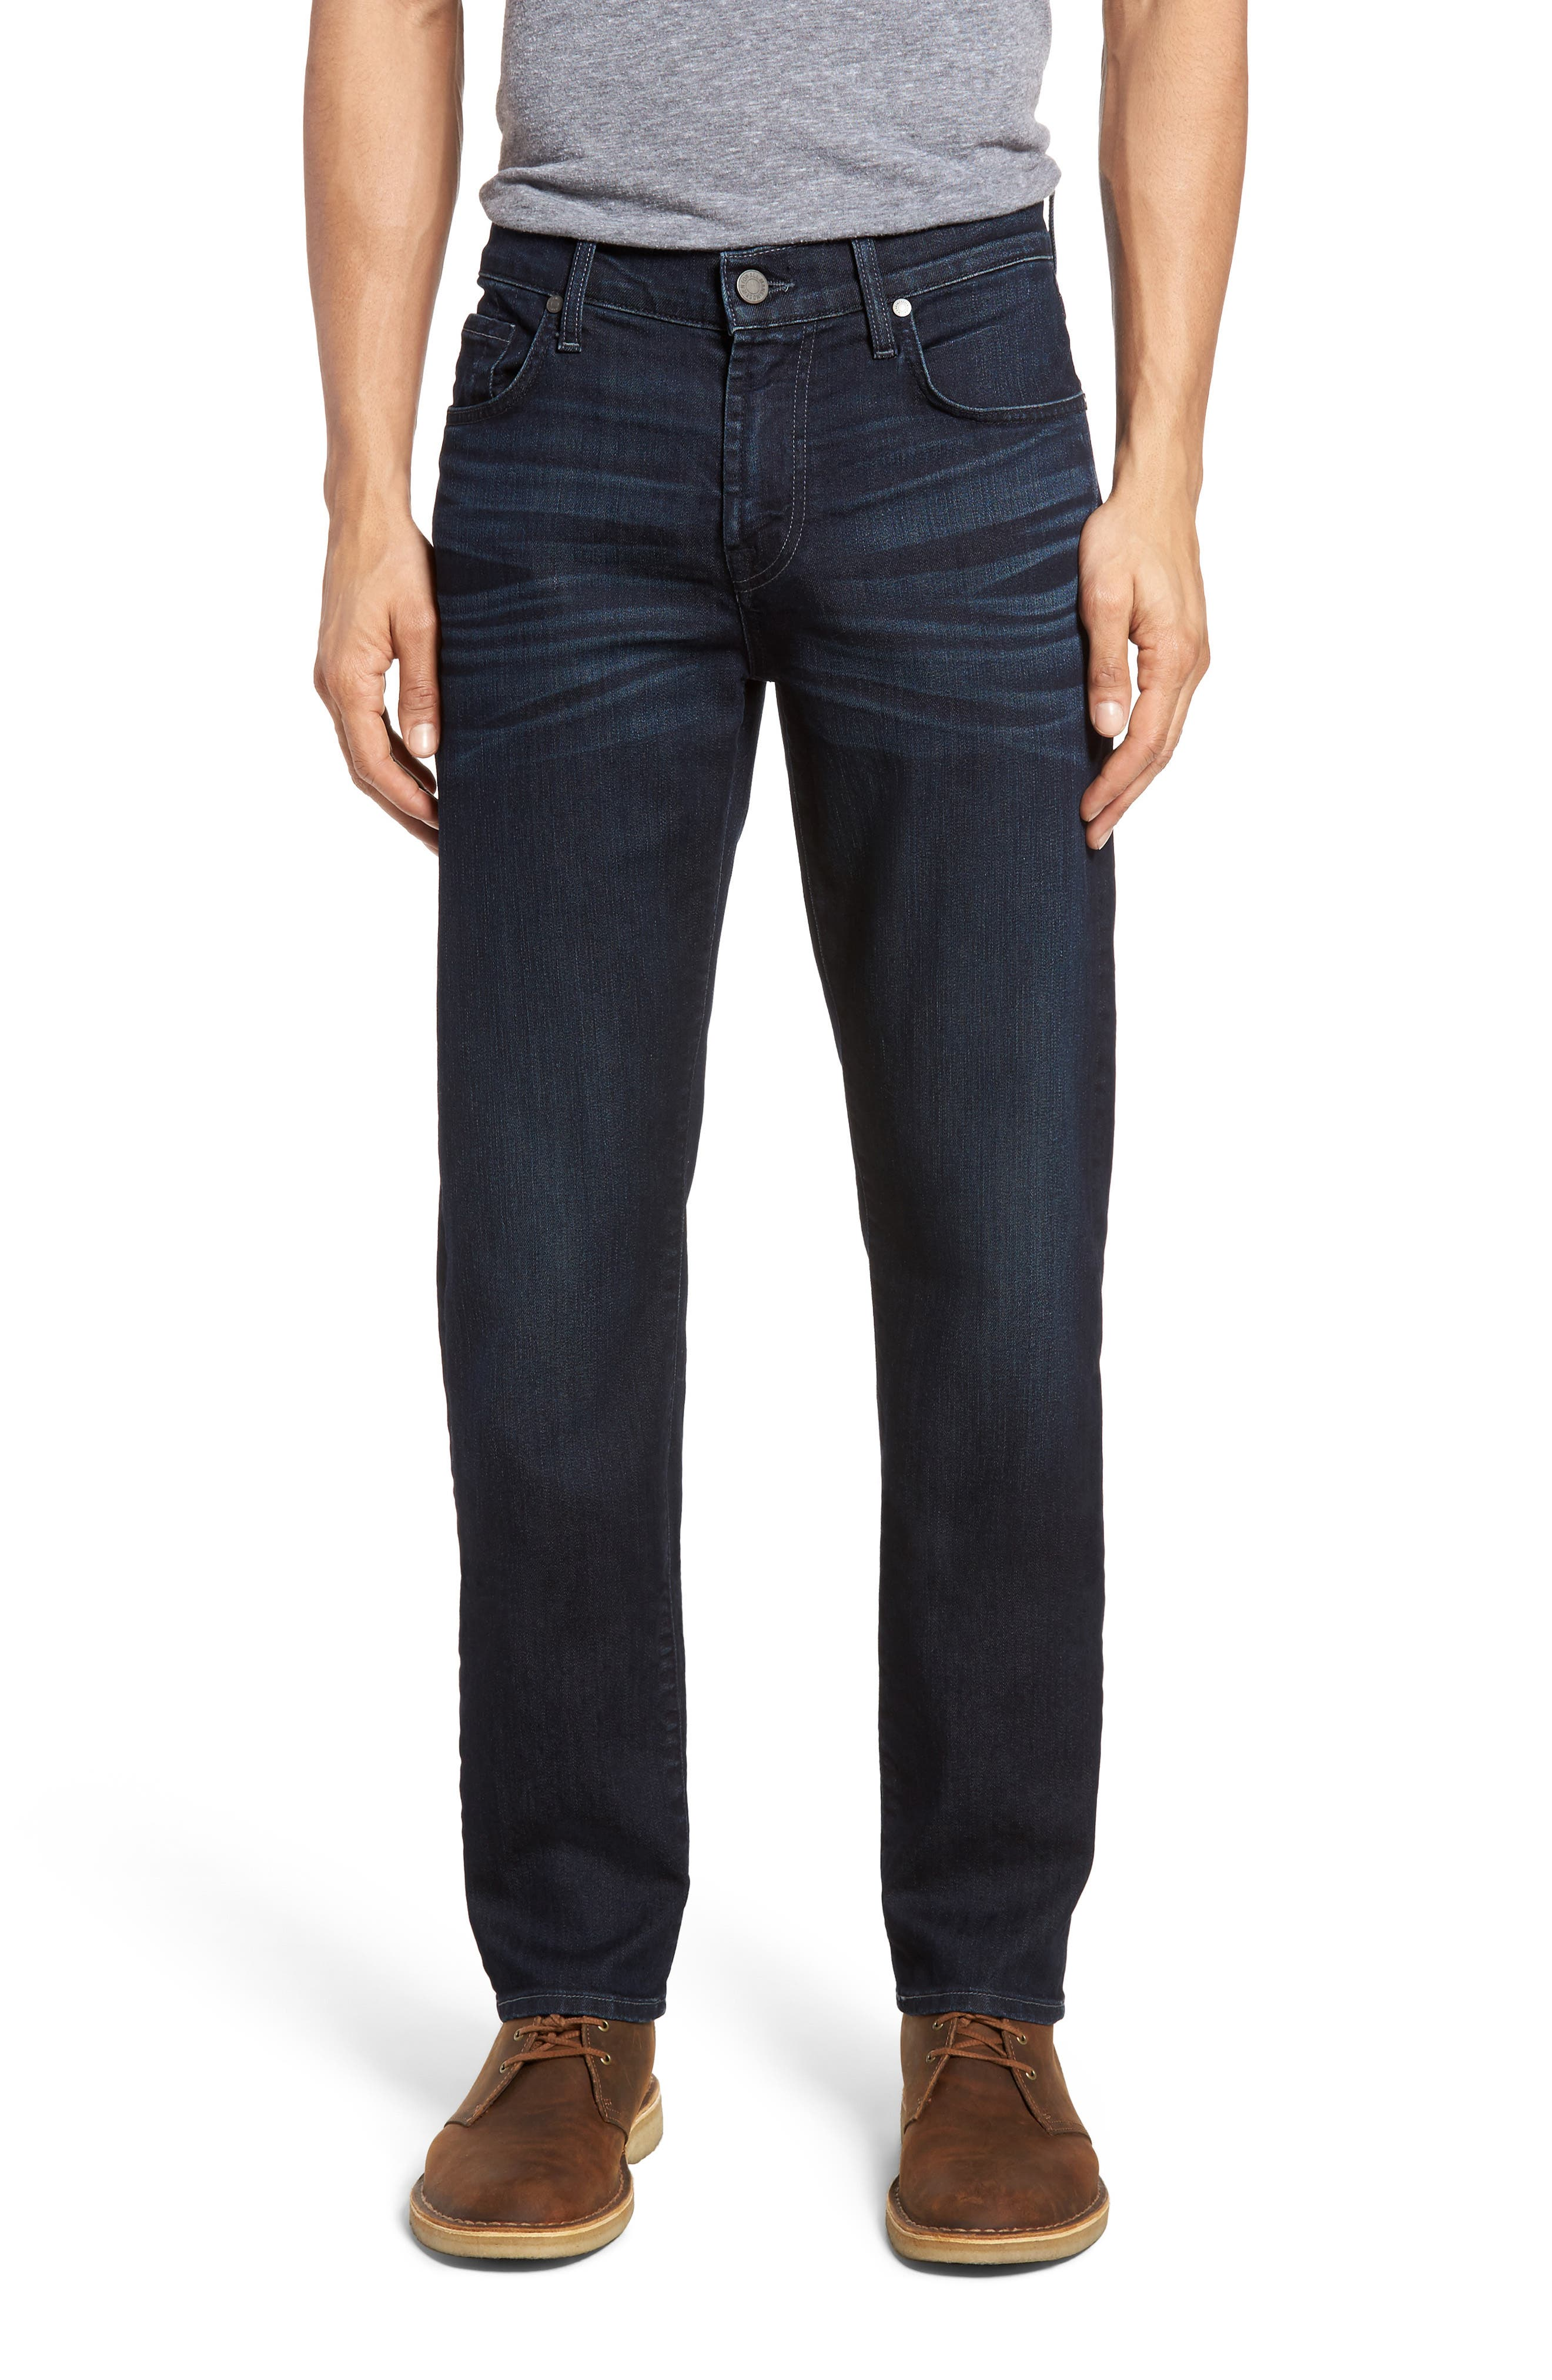 7 FOR ALL MANKIND<SUP>®</SUP>, Slimmy AirWeft Slim Fit Jeans, Main thumbnail 1, color, PERENNIAL